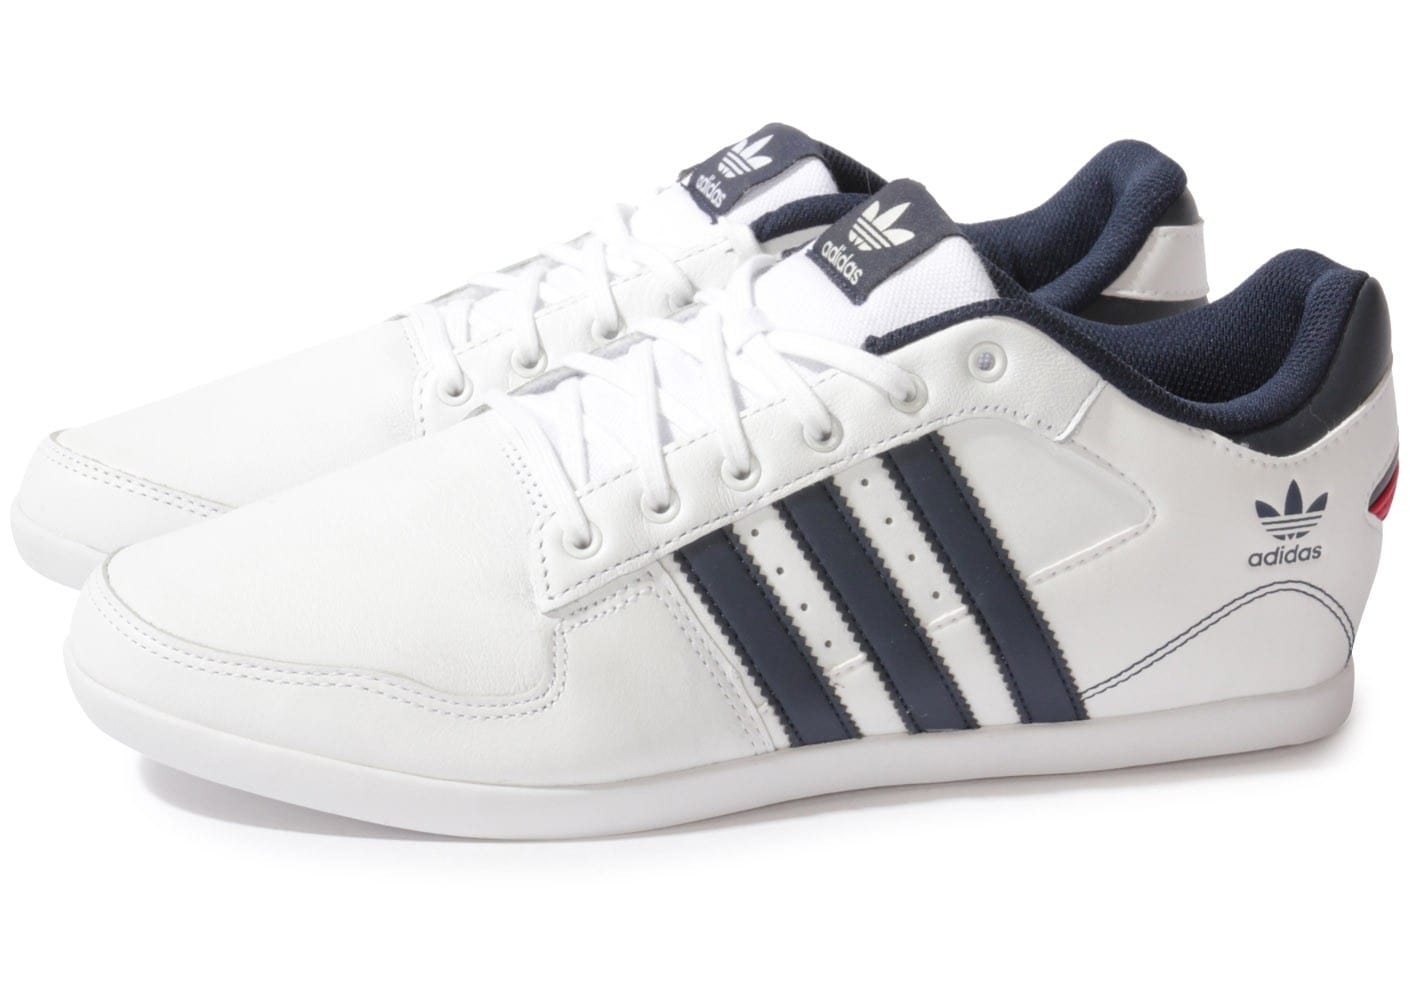 adidas Plimcana 2.0 Blanche Chaussures Baskets homme